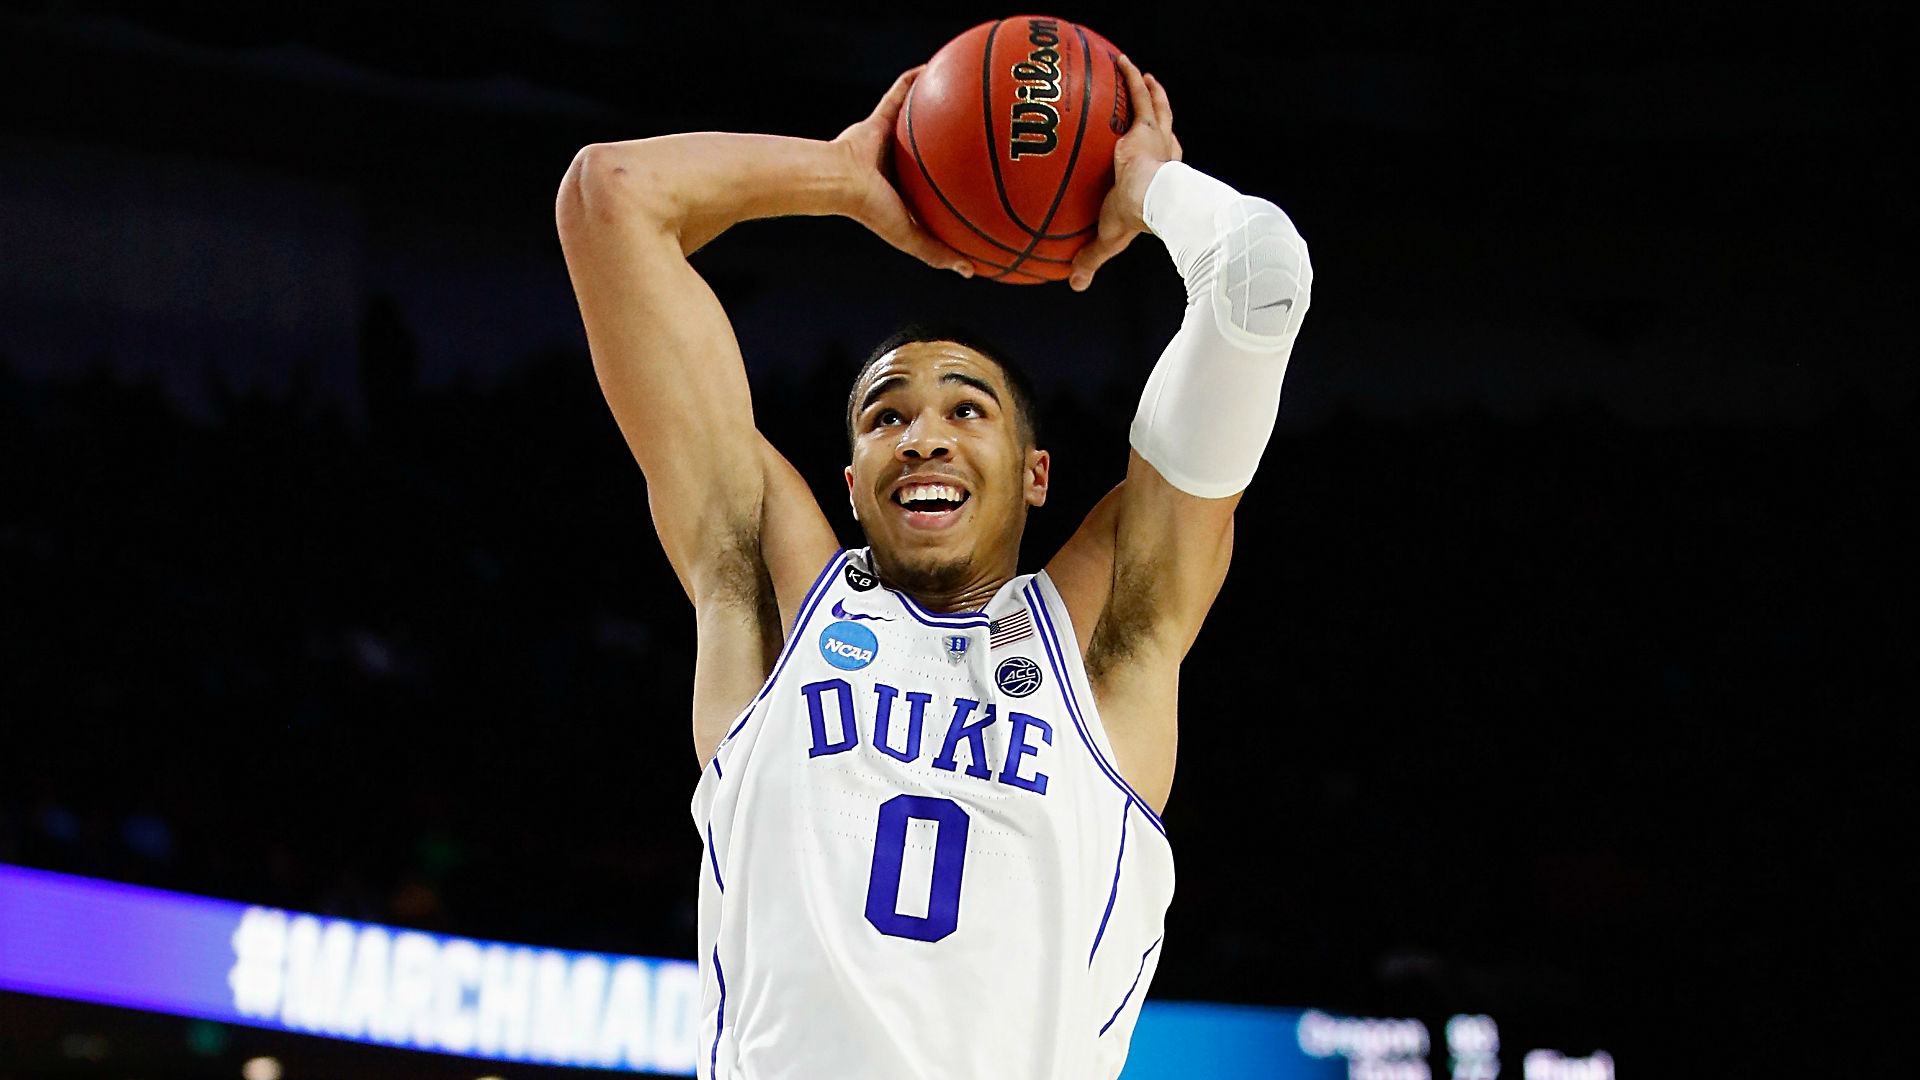 Duke Star Freshman Jayson Tatum Declares For NBA Draft